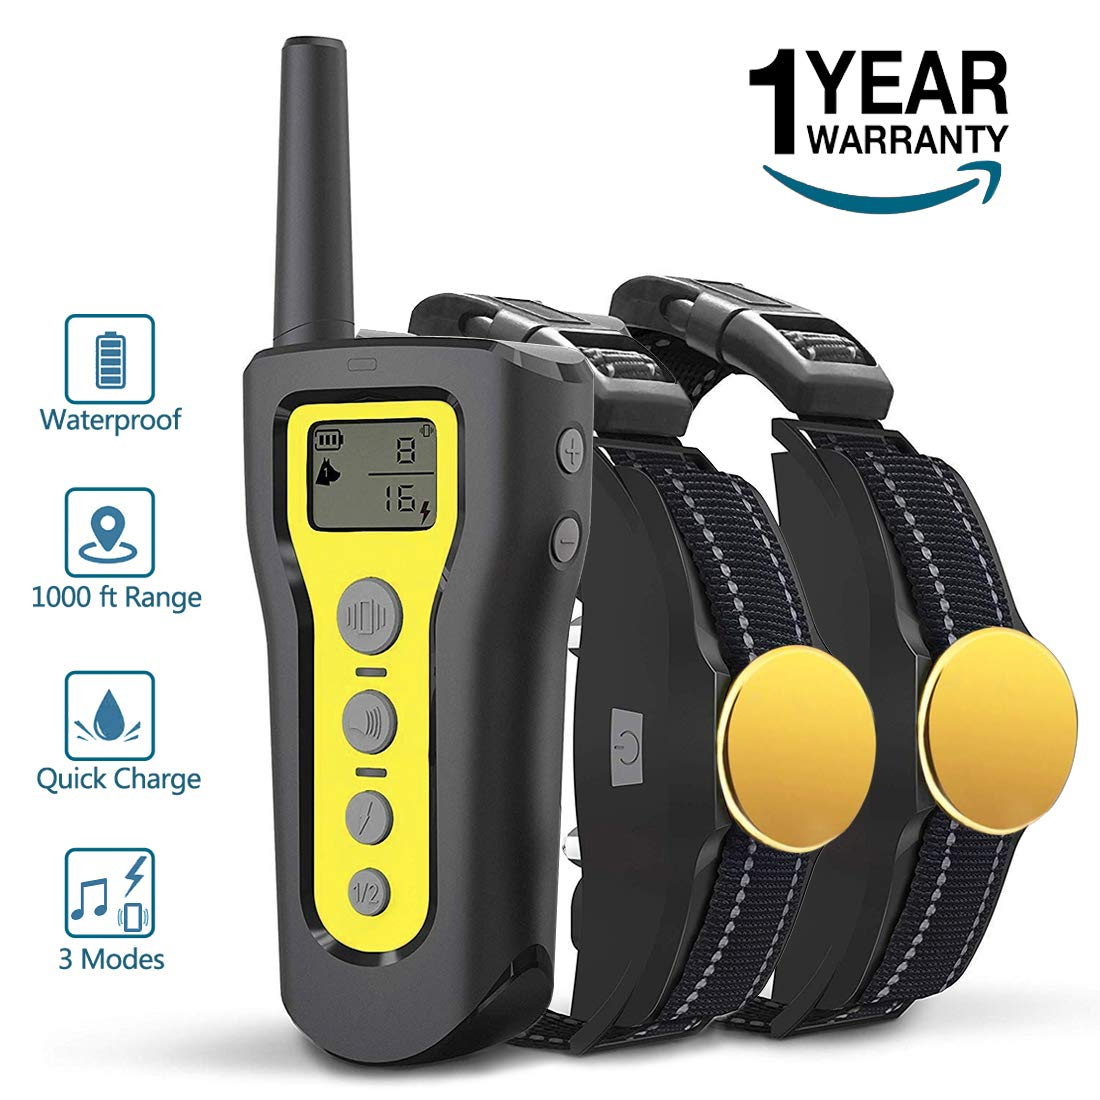 2 Collar AngelaKerry Dog Training Collar, 1000ft Remote Dog Shock Collar, 100% Waterproof and Rechargeable with Beep Vibra Electric Shock (Yellow, 2 Collars)